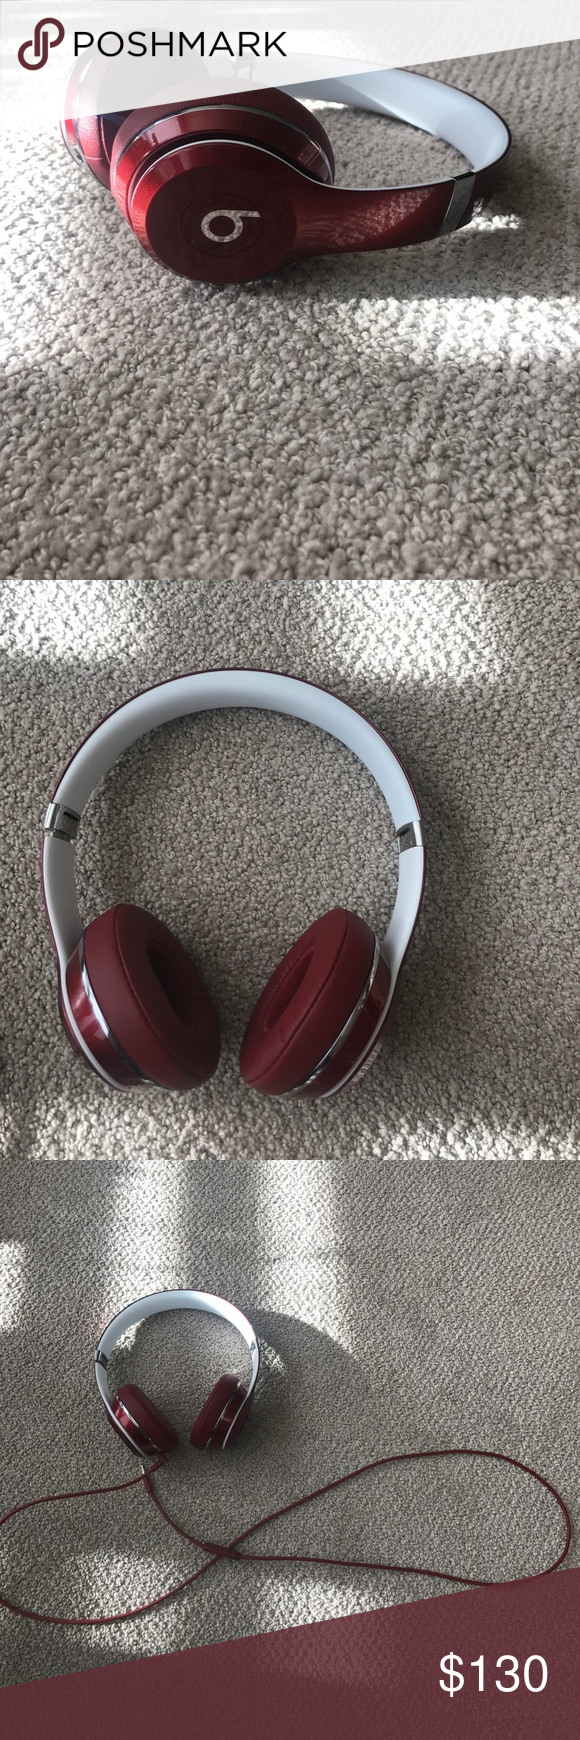 Burgundy Beats Solo, With Wire BRAND new. Worn twice to test out ...